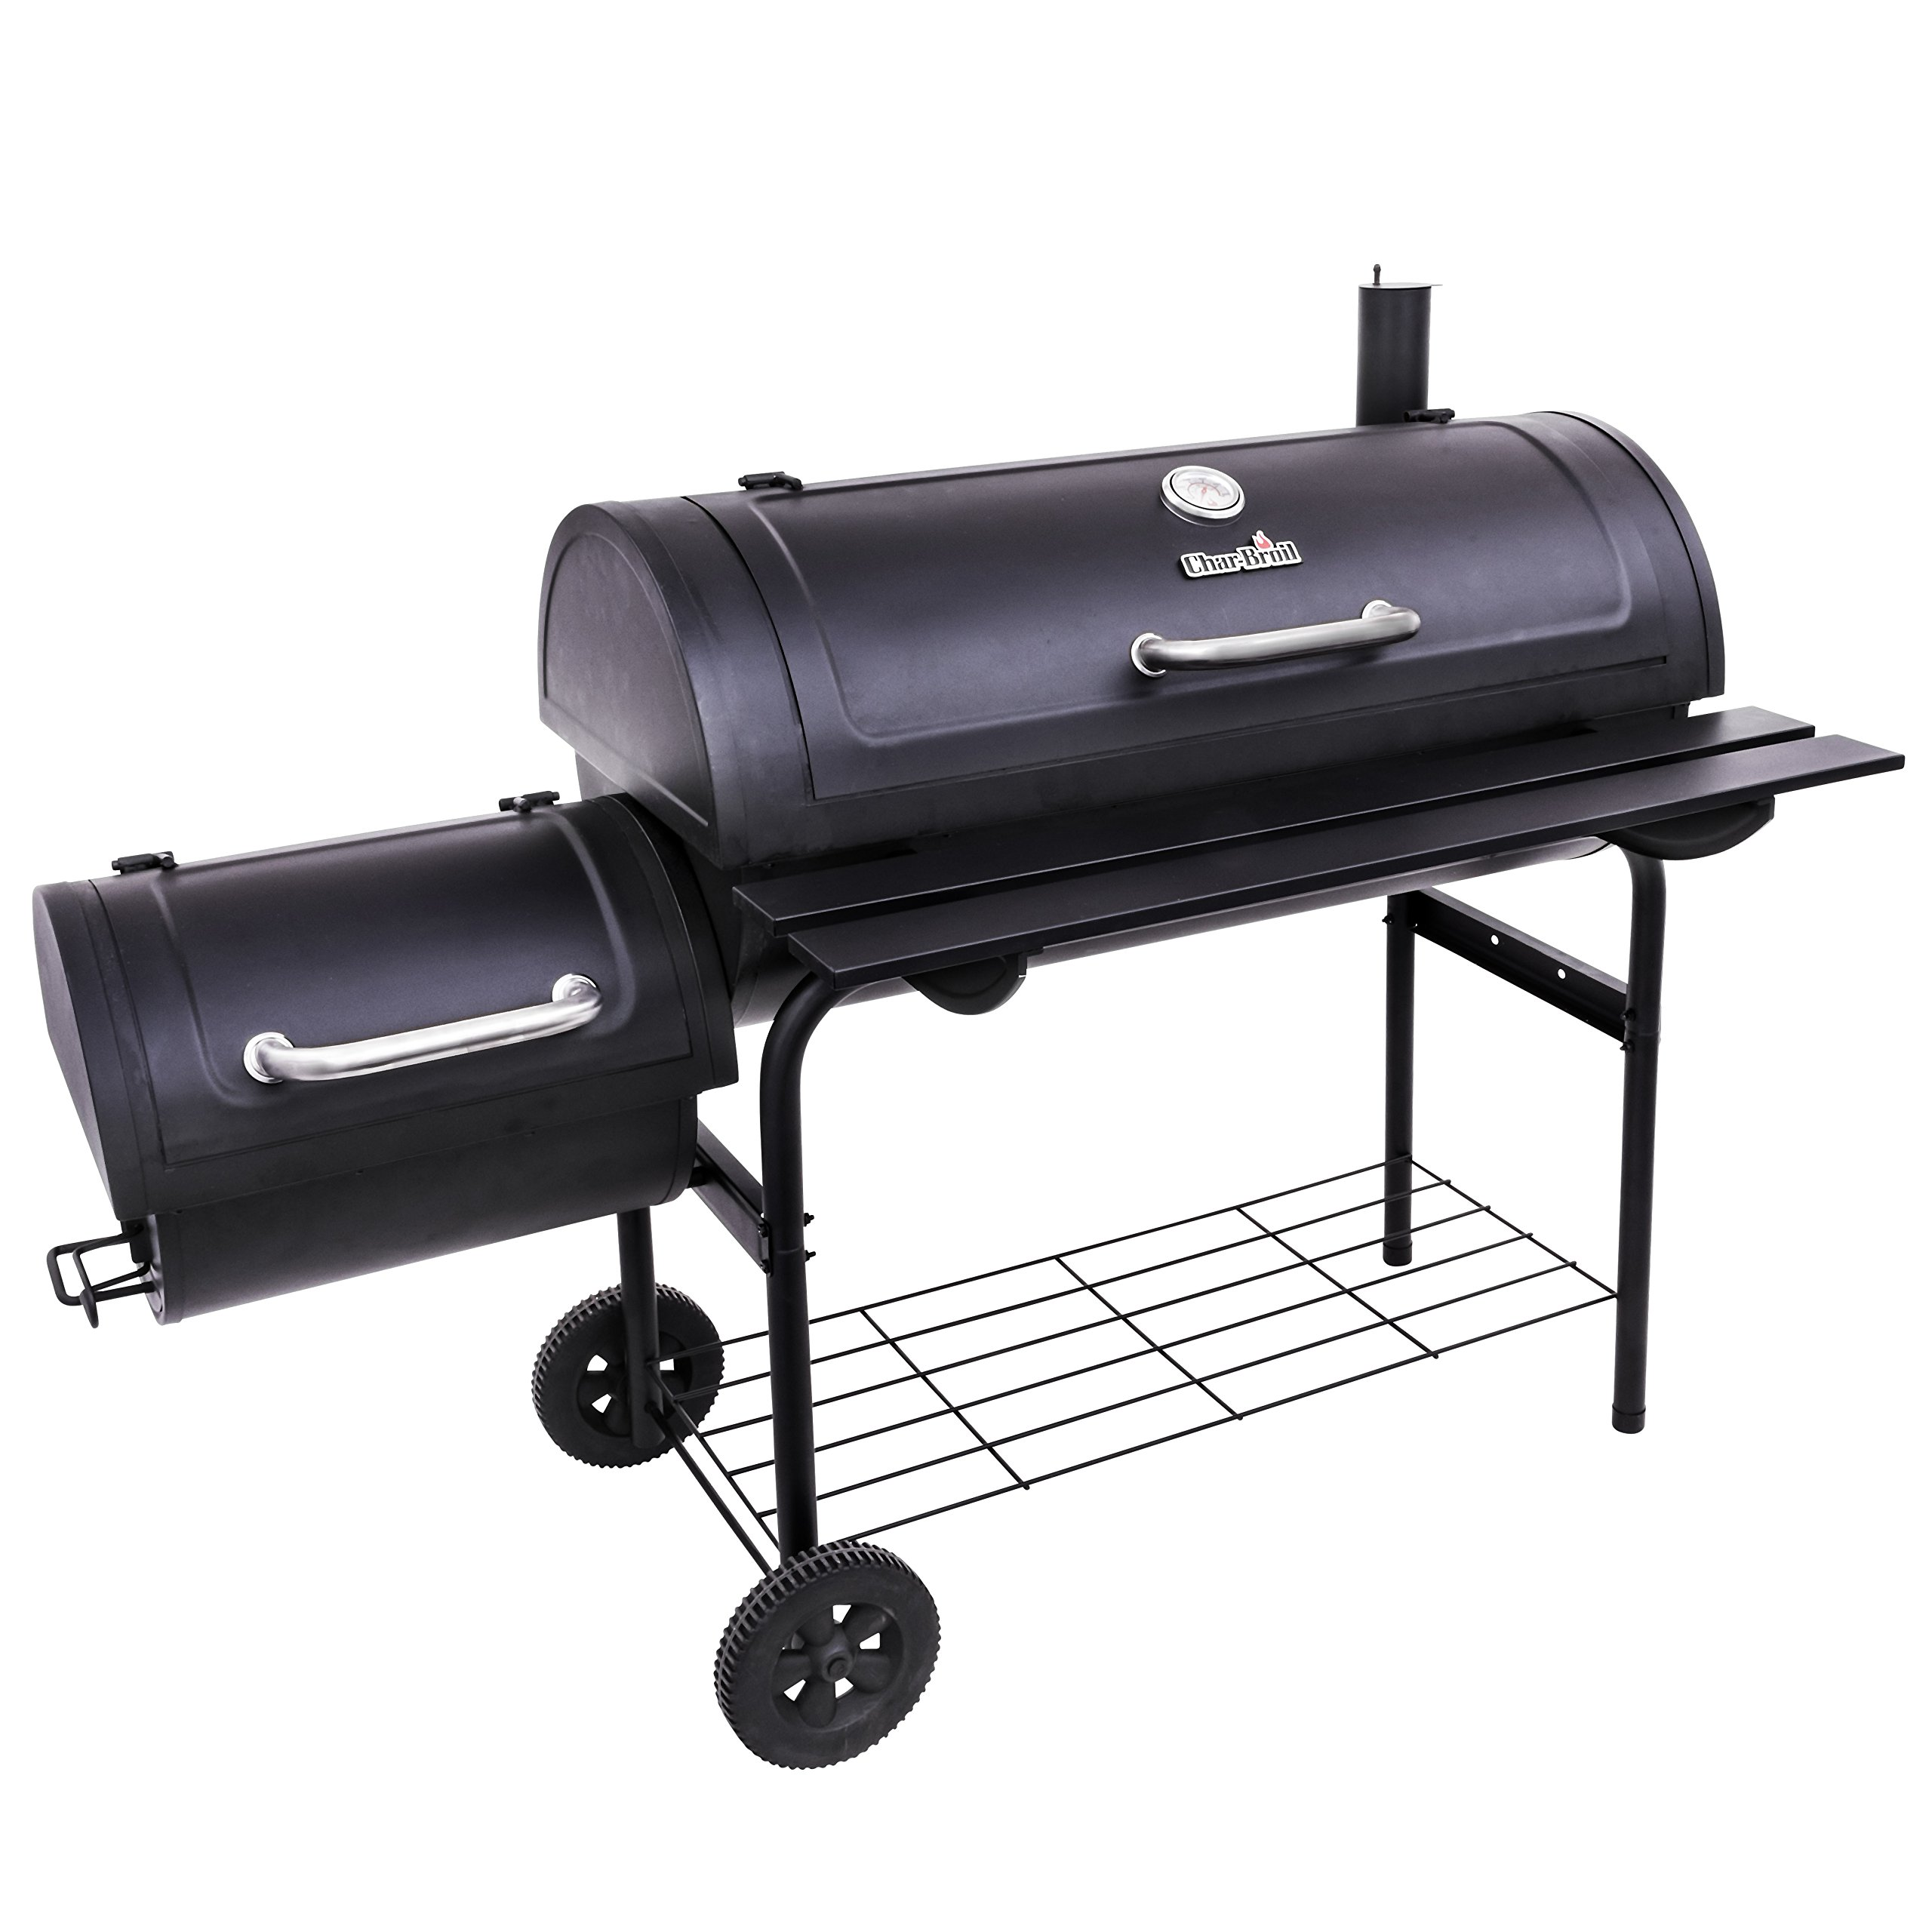 Char-Broil Deluxe Offset Smoker, 40'' by Char-Broil (Image #1)